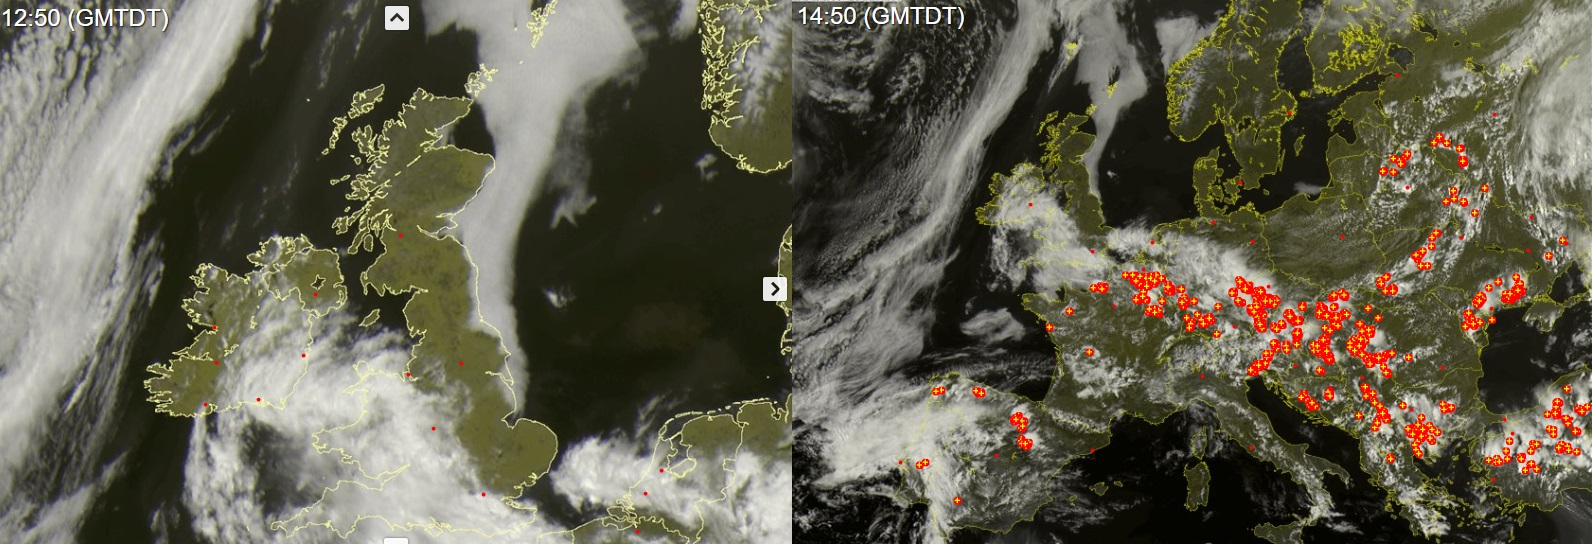 Latest cloud cover over Ireland today with convection taken place due to the heat allowing clouds to develop and bubble up